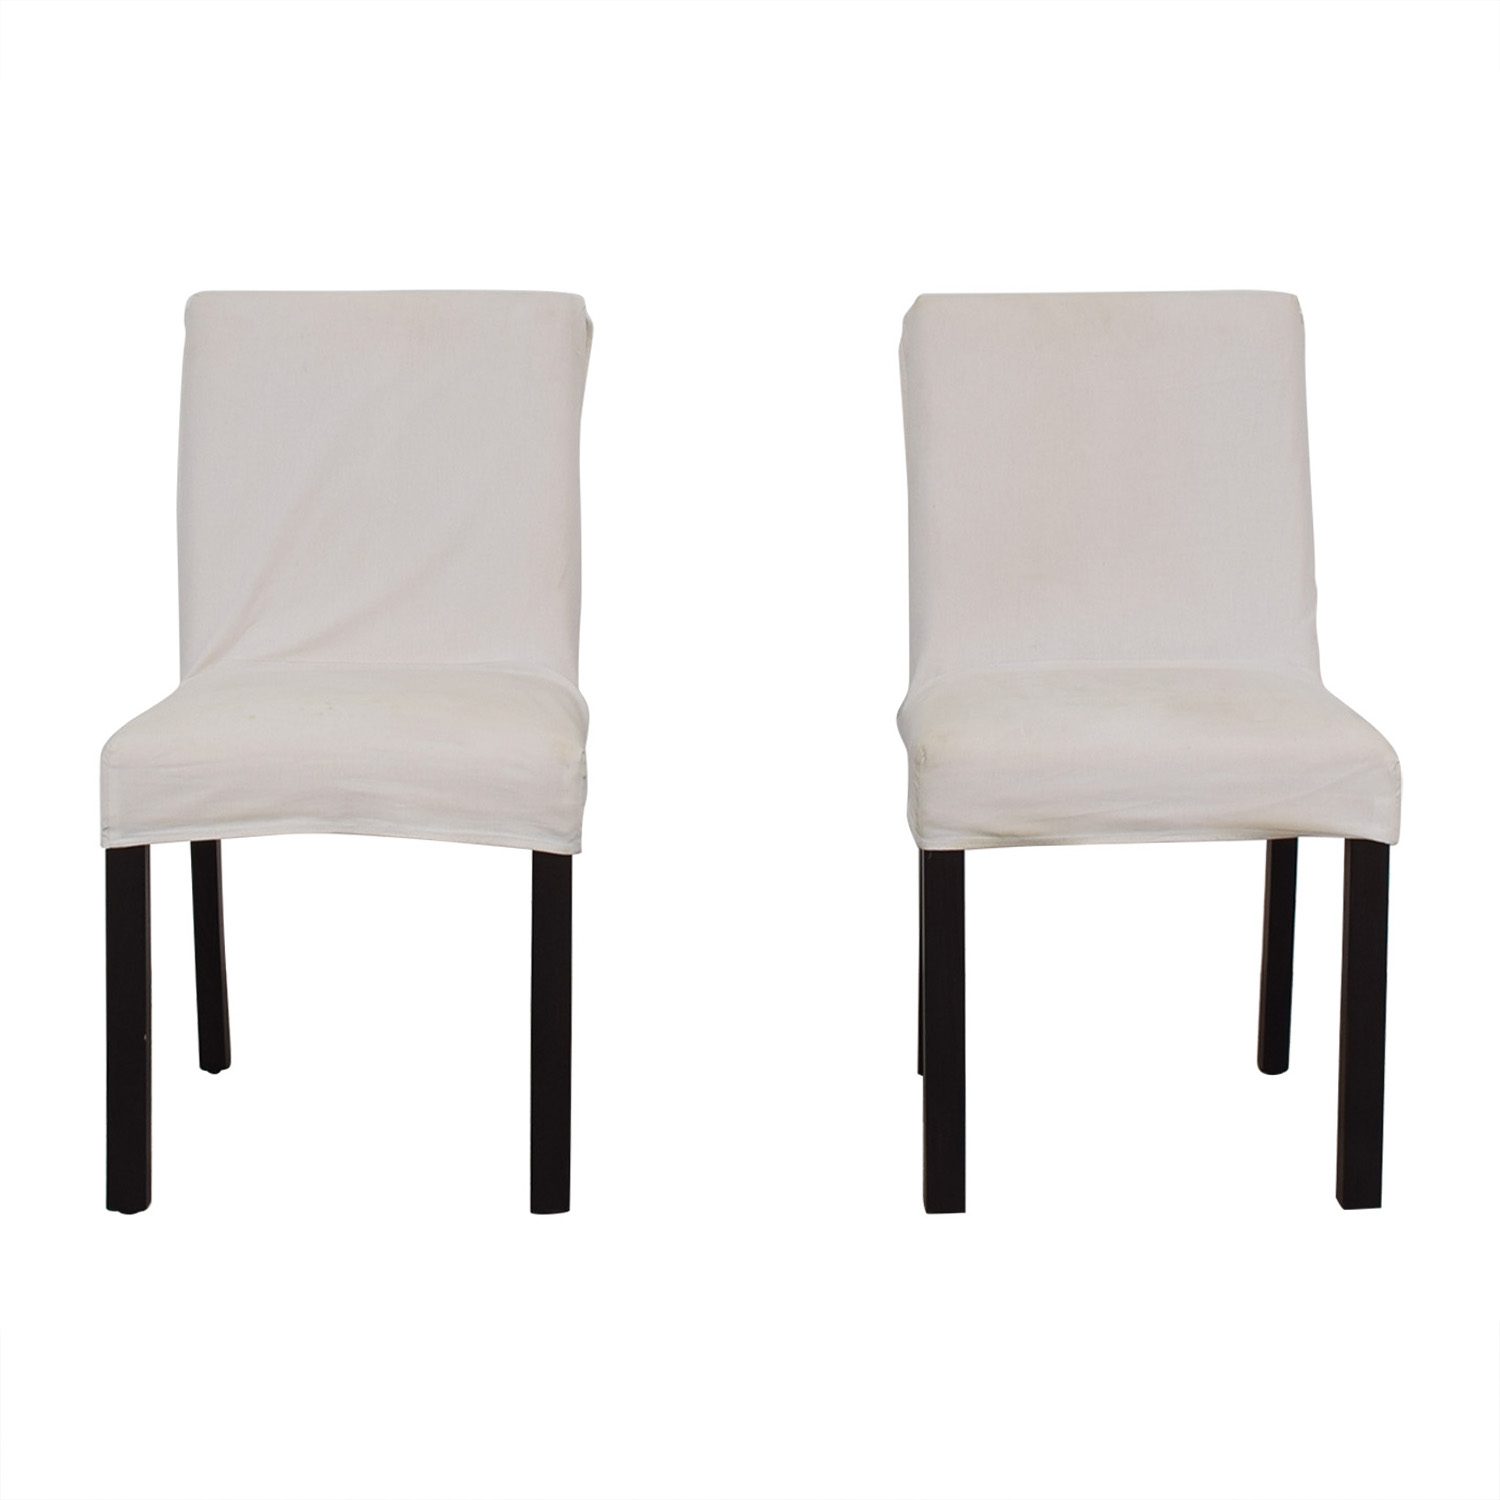 buy Crate & Barrel White Chairs Crate & Barrel Dining Chairs